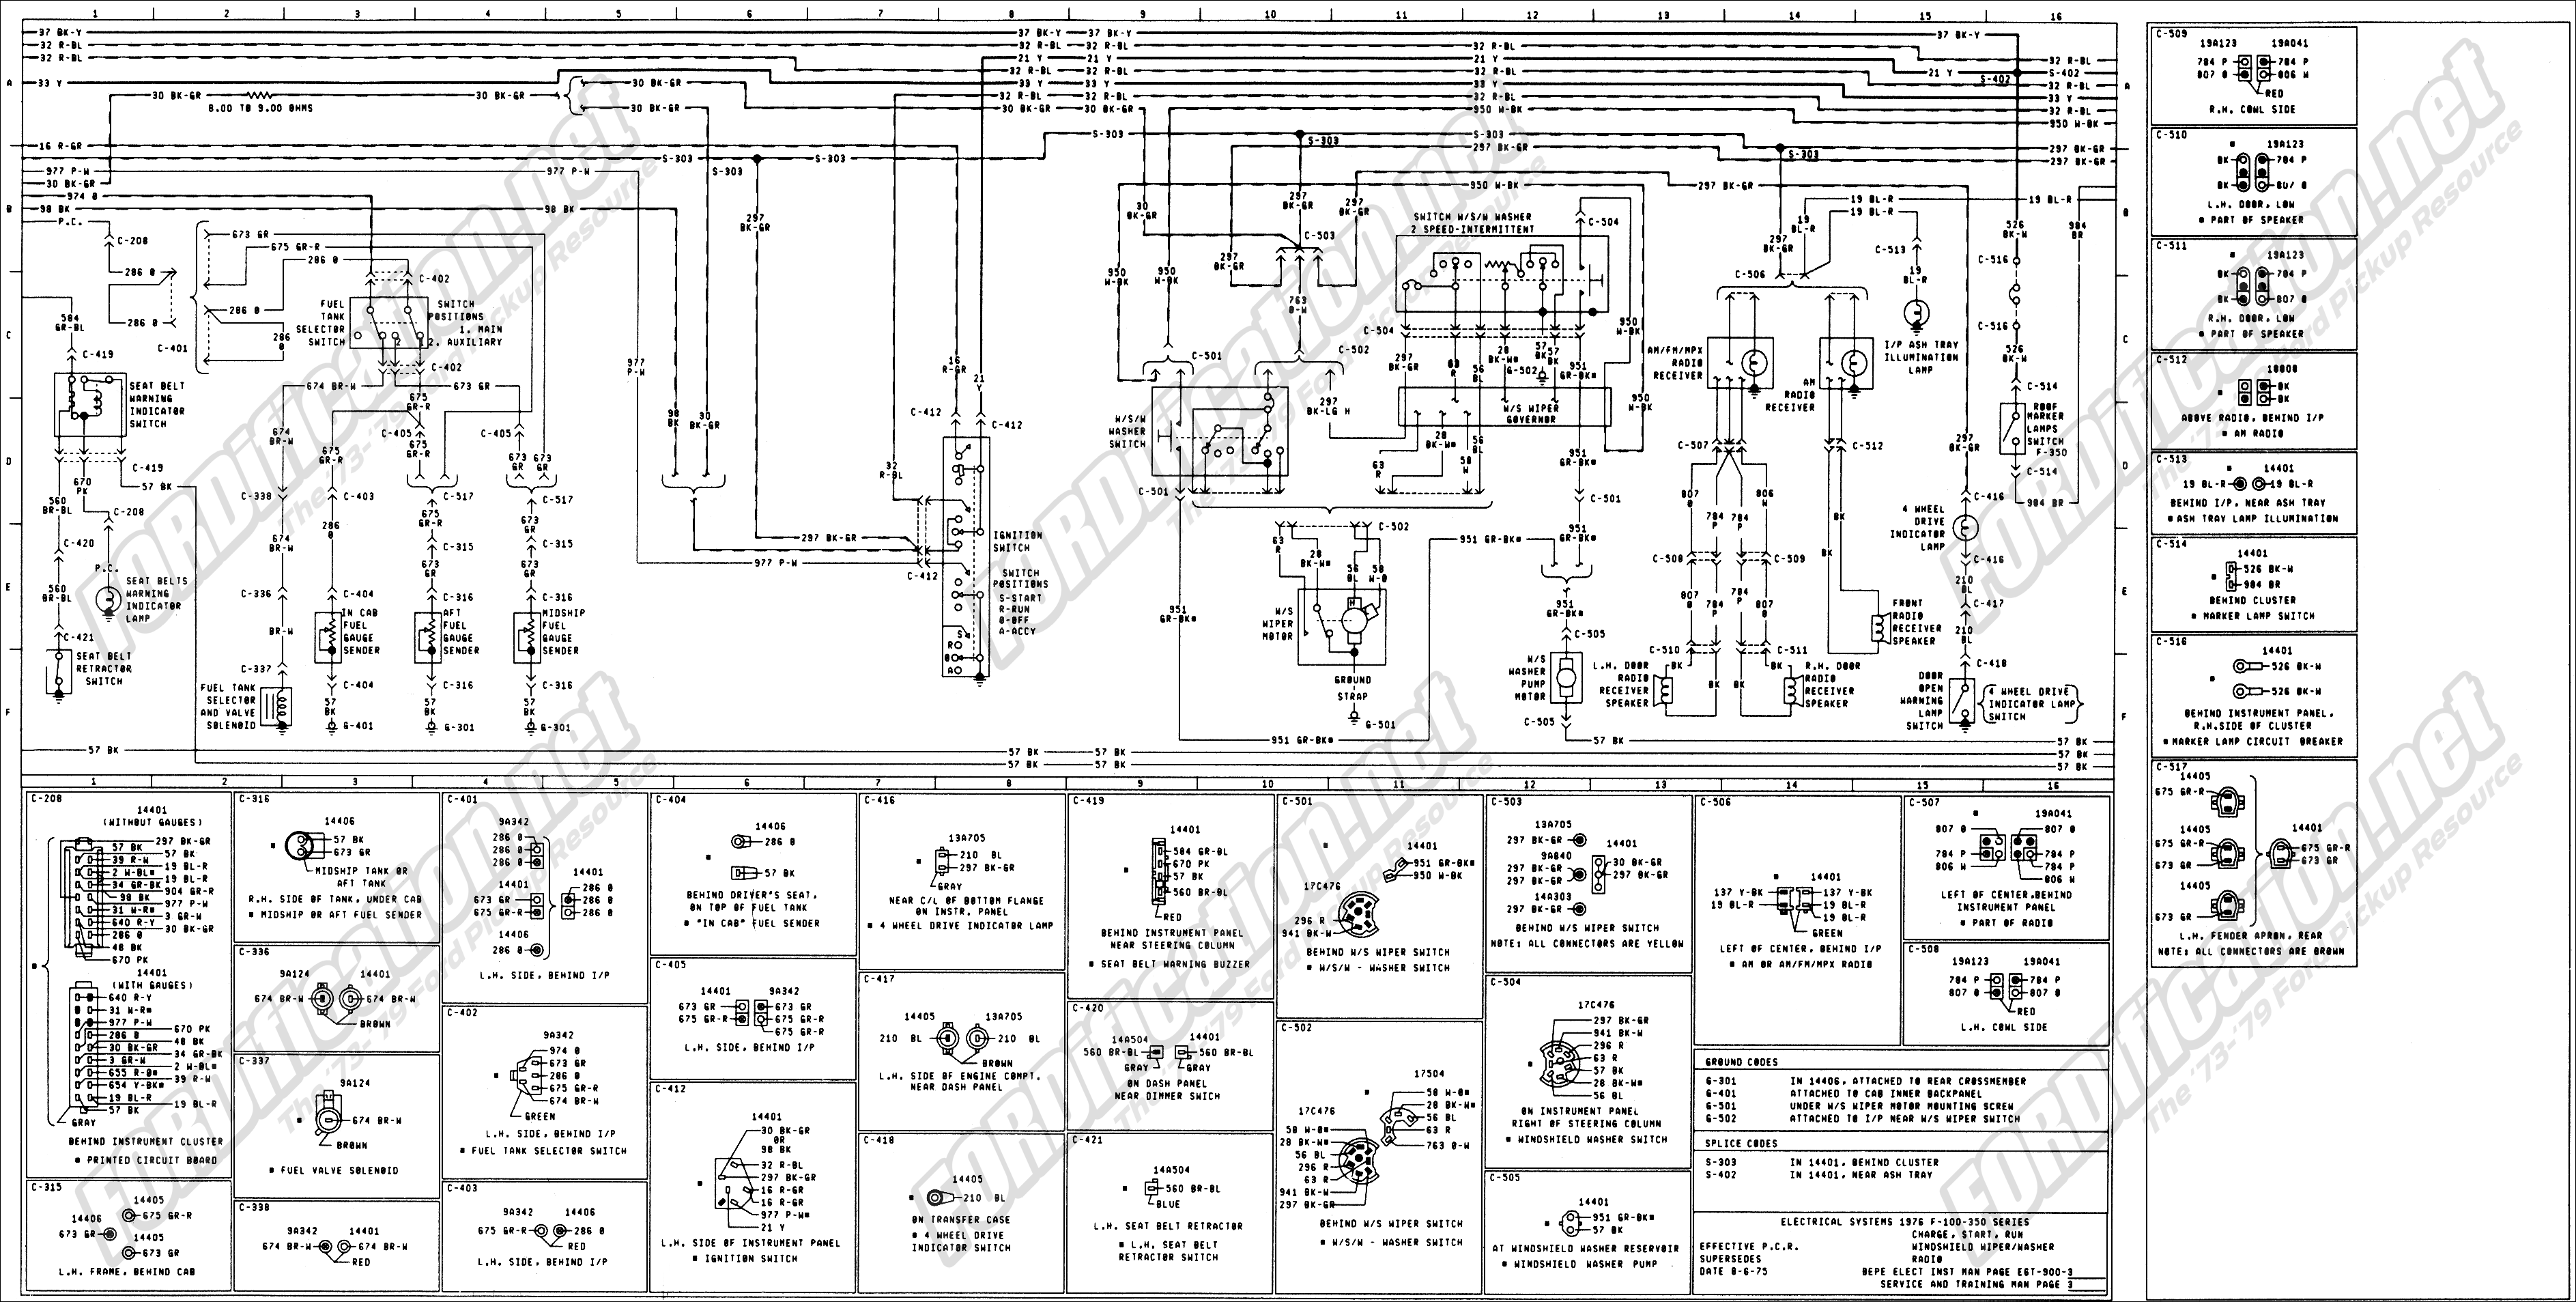 wiring_76master_3of9 1973 1979 ford truck wiring diagrams & schematics fordification net ford transit electrical diagram wiring schematic at soozxer.org